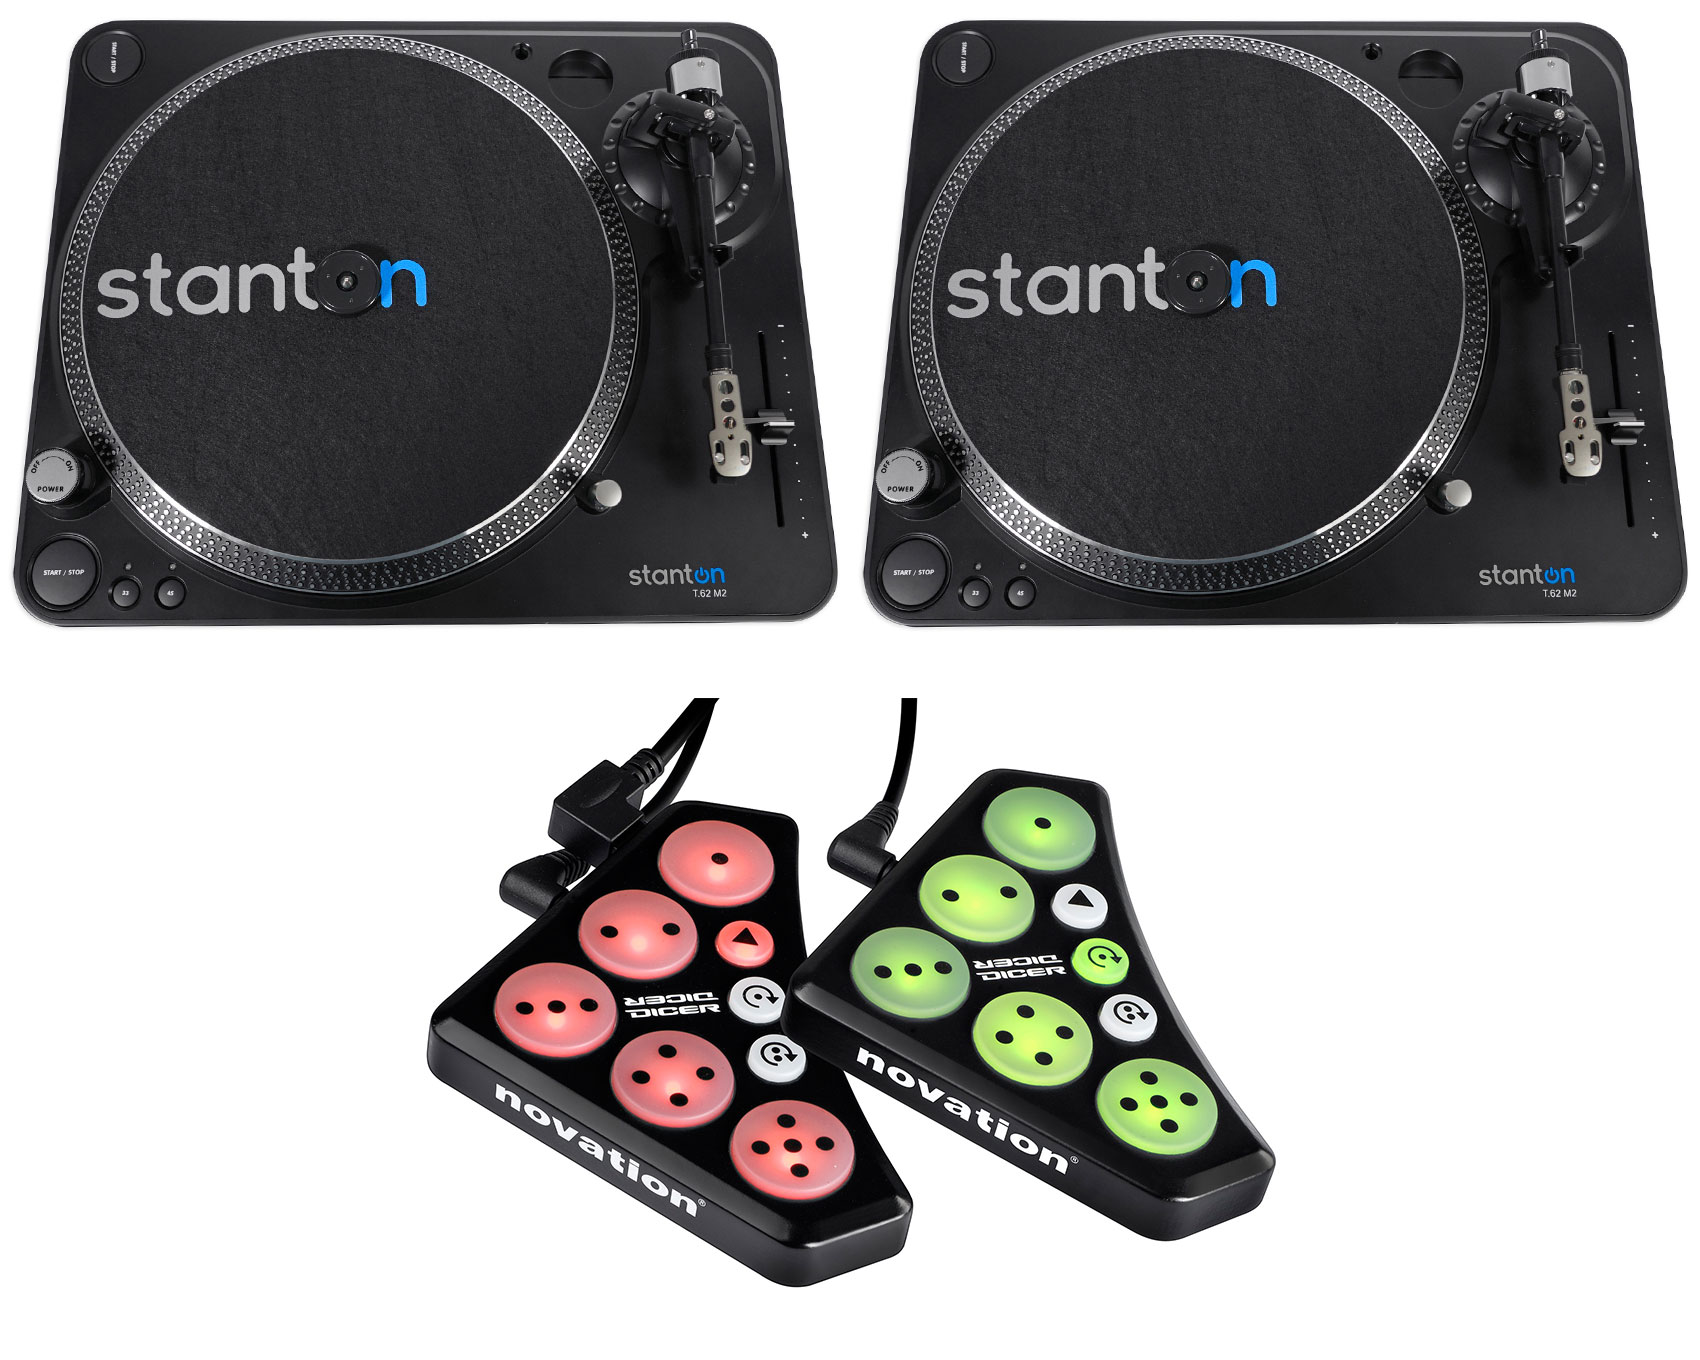 (2) Stanton T.62 M2 Direct-Drive Straight-arm DJ Turntables+300 cartridge+Dicer by Stanton